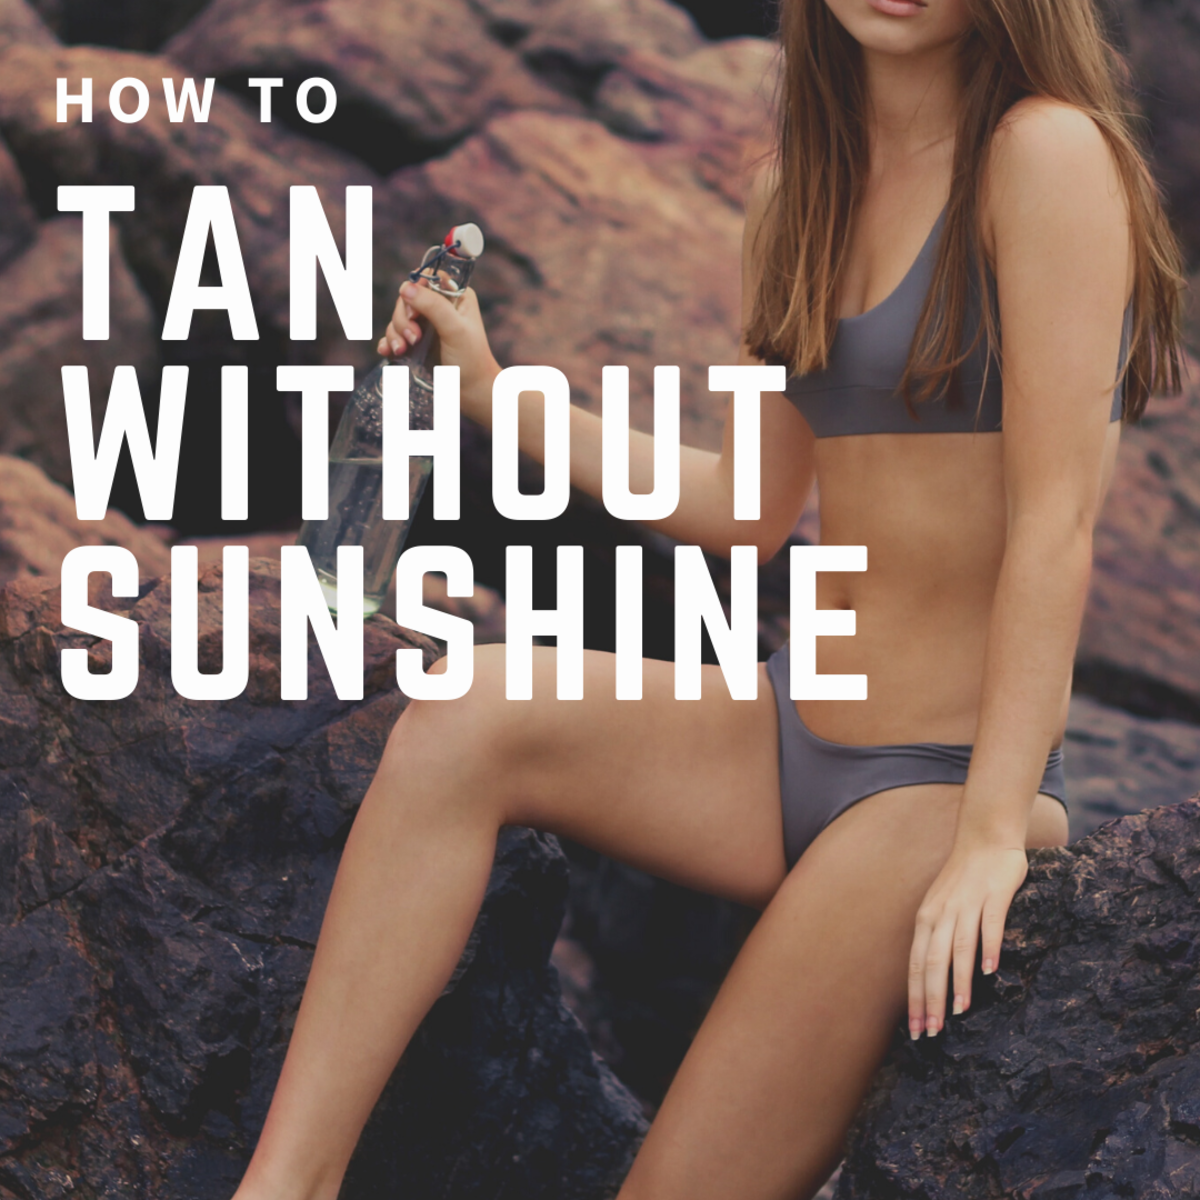 Sunless Tanning and Spray Tan Tips